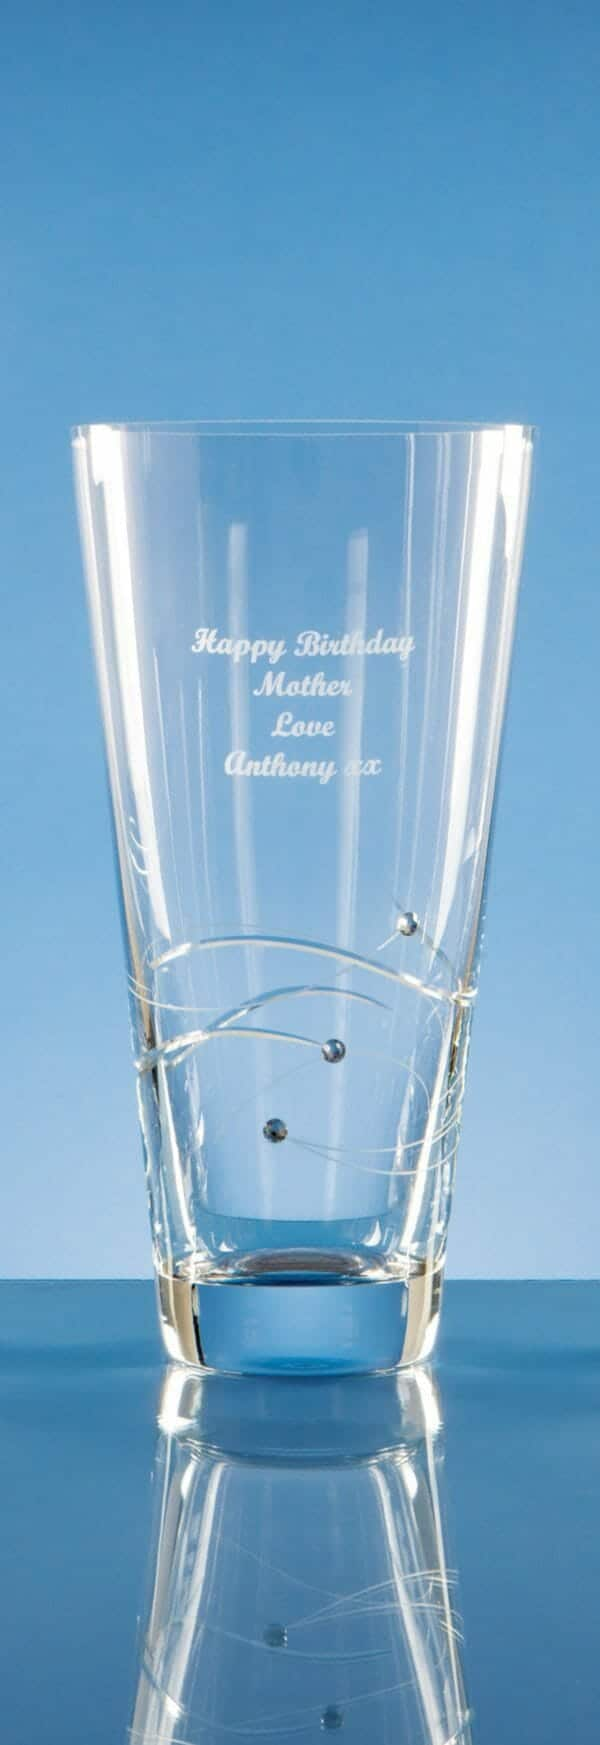 glass-conical-vase-with-spiral-pattern